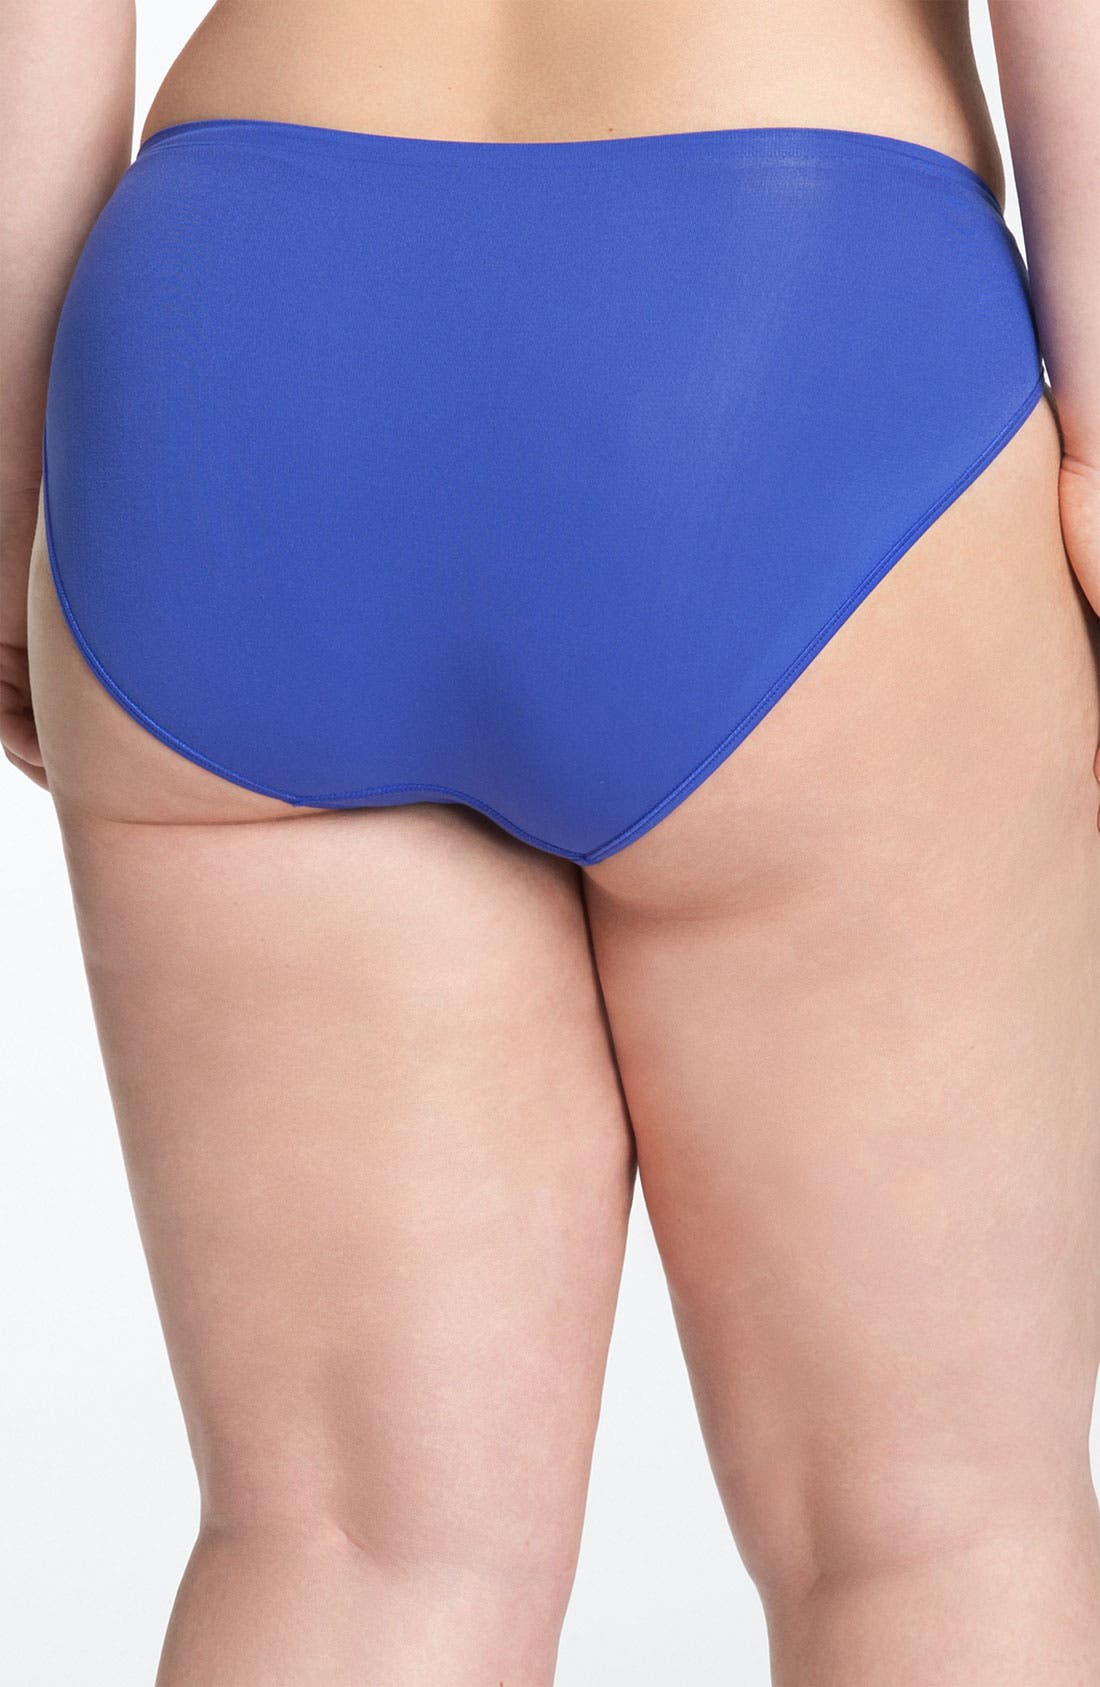 Alternate Image 2  - Shimera Seamless High Cut Panties (Plus Size) (3 for $33)